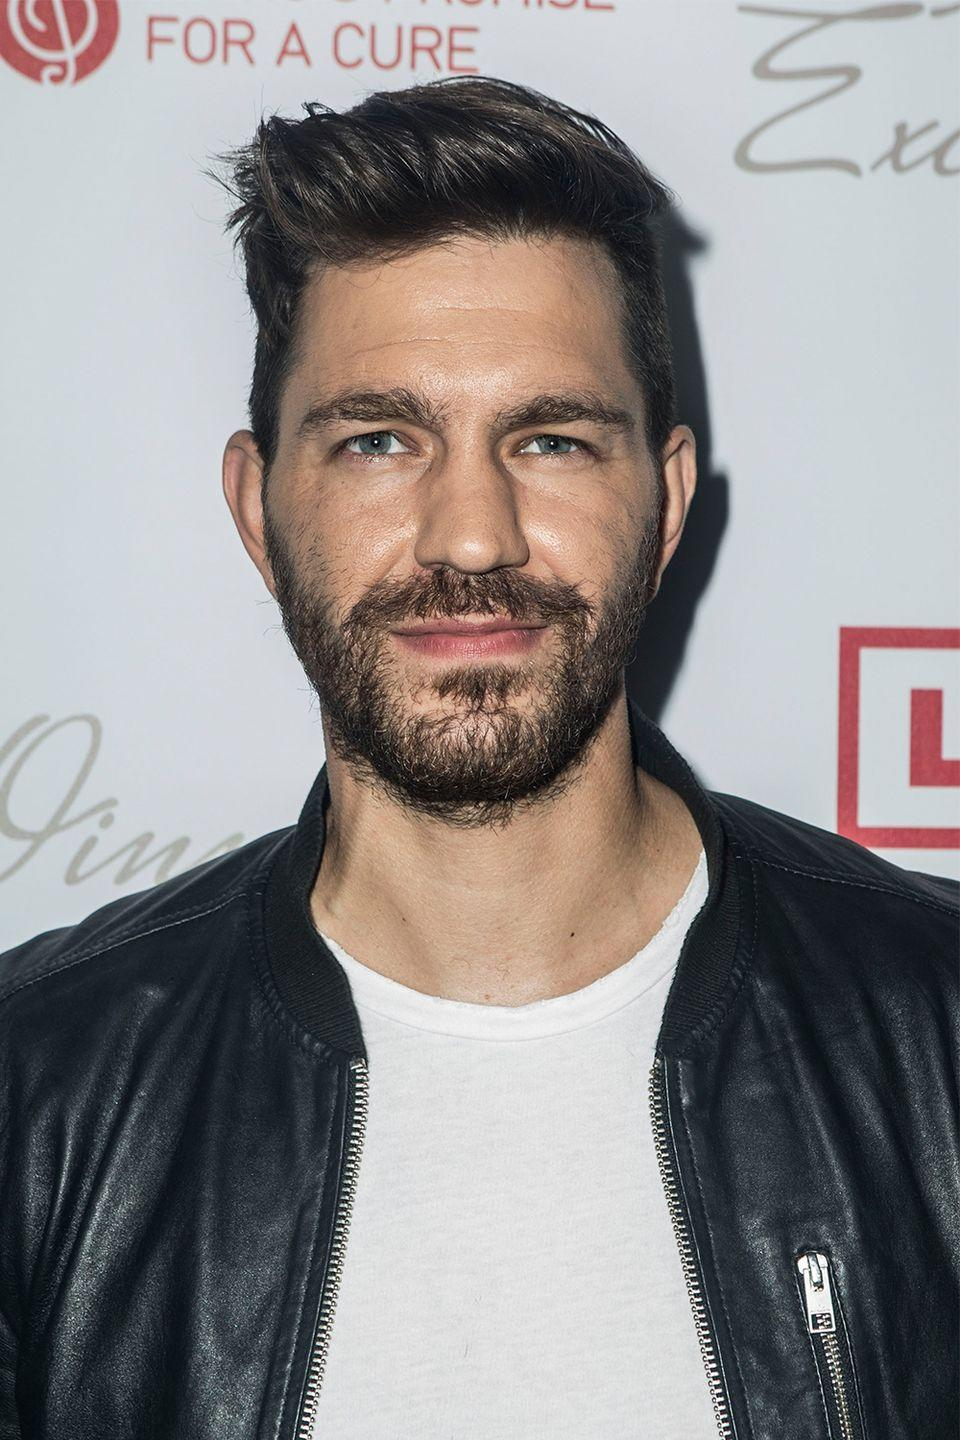 """<p>The """"Honey, I'm Good"""" singer is among the handful of celebrities who has been extremely open about why he remained abstinent until marriage. During an interview on <em><a href=""""http://people.com/music/andy-grammer-waited-to-have-sex-until-he-was-married/"""" rel=""""nofollow noopener"""" target=""""_blank"""" data-ylk=""""slk:The Talk"""" class=""""link rapid-noclick-resp"""">The Talk</a></em> in 2016, Andy revealed he hadn't had sex before marrying his wife Aijia in 2012. </p><p>""""I actually waited until I was married to have sex. That was not without some porn, unfortunately,"""" Andy said. He continued to discuss the accessibility of porn on the internet, saying, """"I do think that, as a culture, we don't understand the effects of that. I feel for men right now because it's never been this easy to do something so destructive to yourself.""""</p>"""